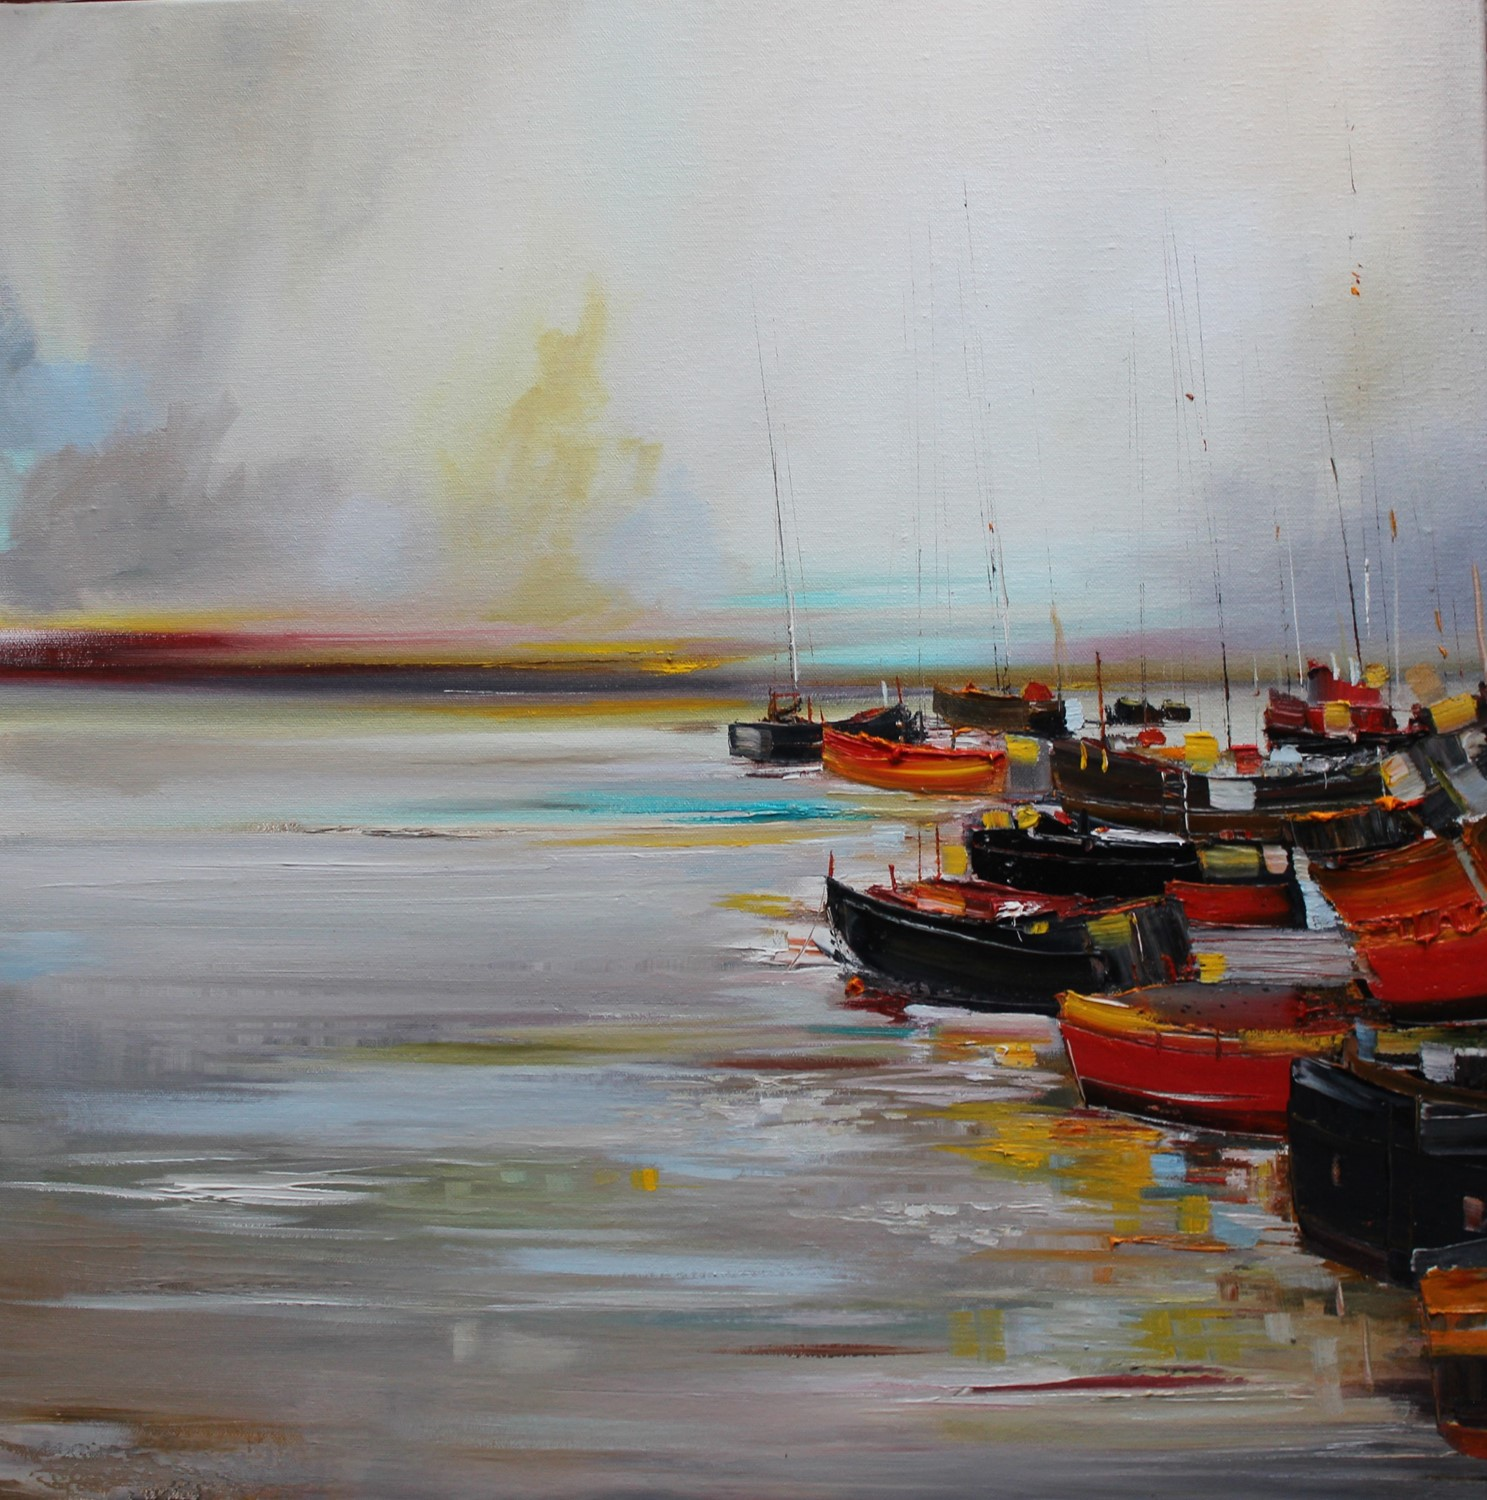 'Still Waters at the Harbour' by artist Rosanne Barr